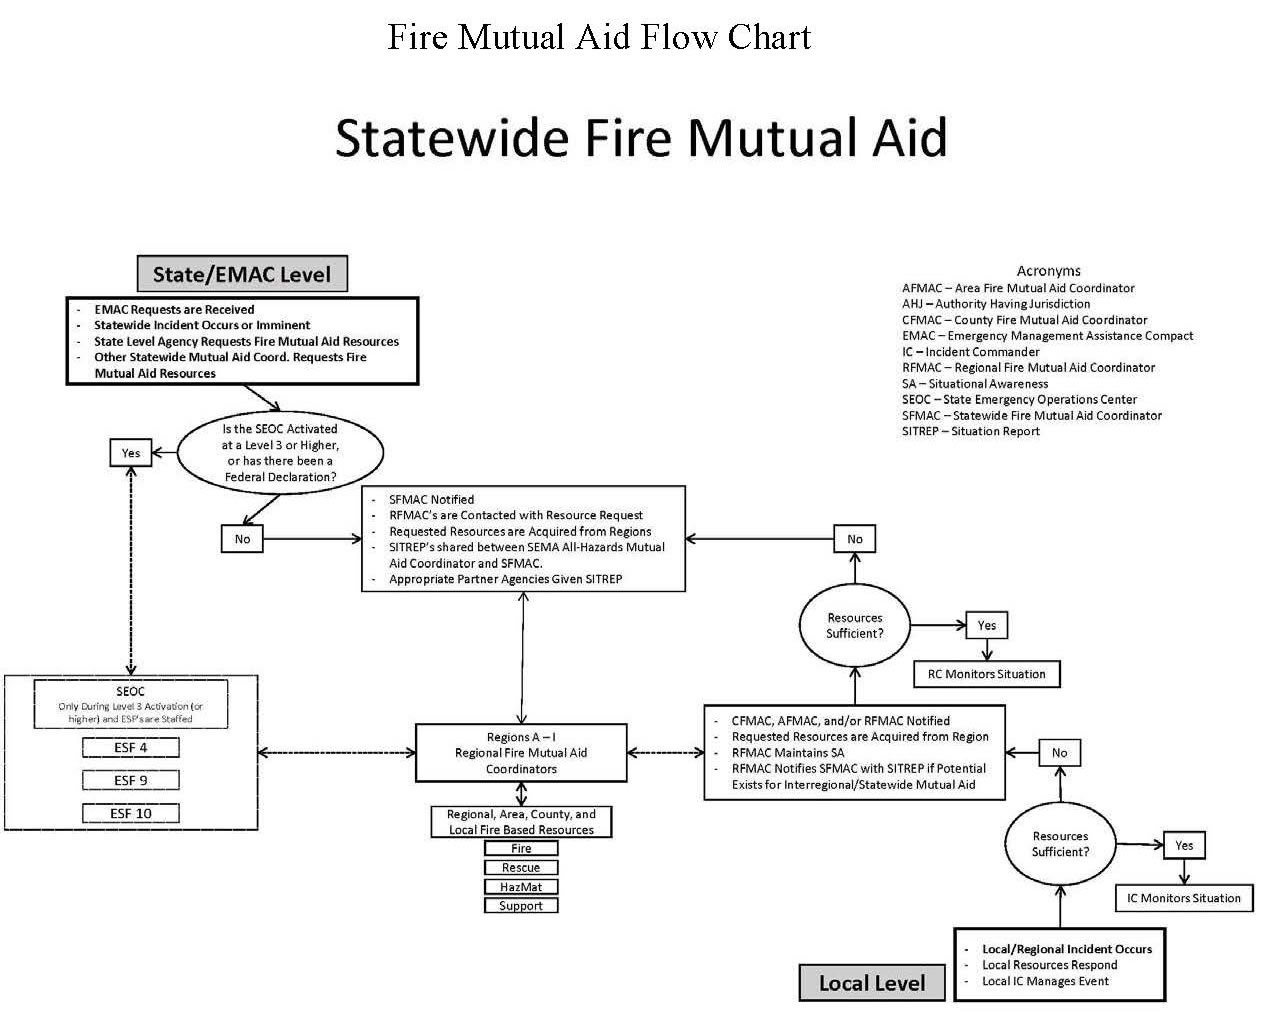 image of mutual aid flowchart that shows the process of requesting EMAC or Federal resources